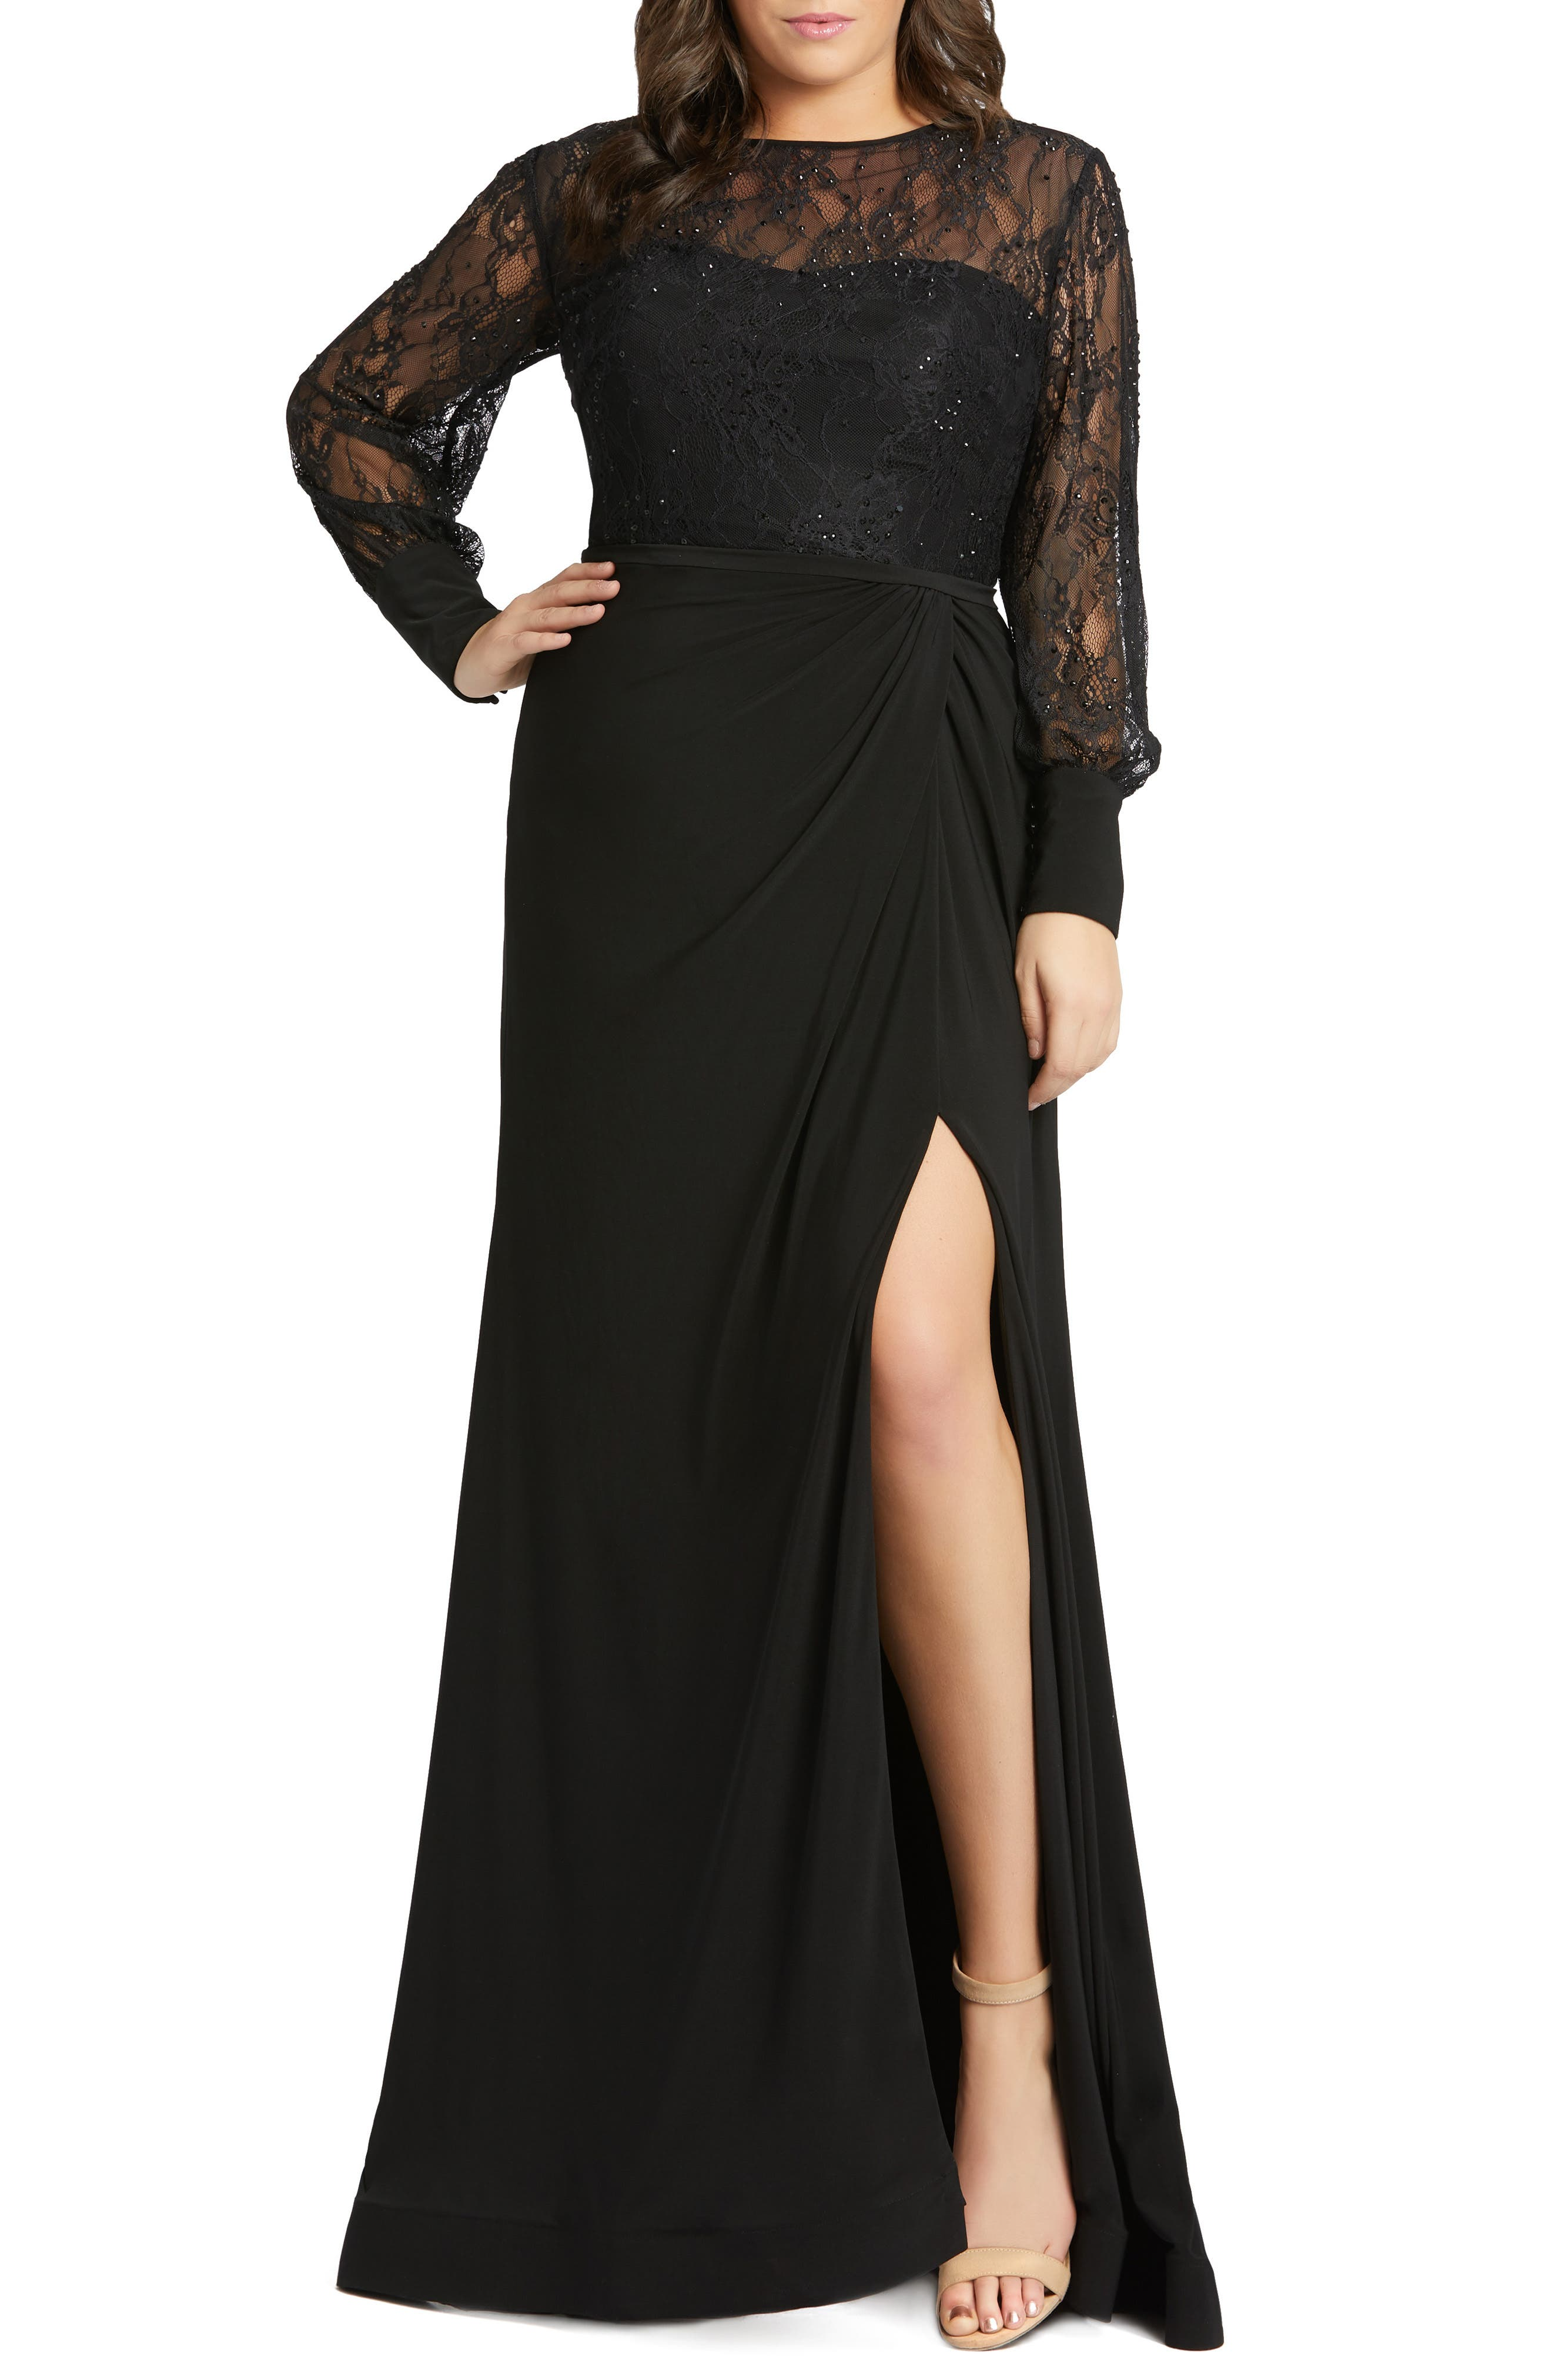 1930s Evening Dresses | Old Hollywood Dress Plus Size Womens MAC Duggal Long Sleeve Lace Illusion Gown $398.00 AT vintagedancer.com